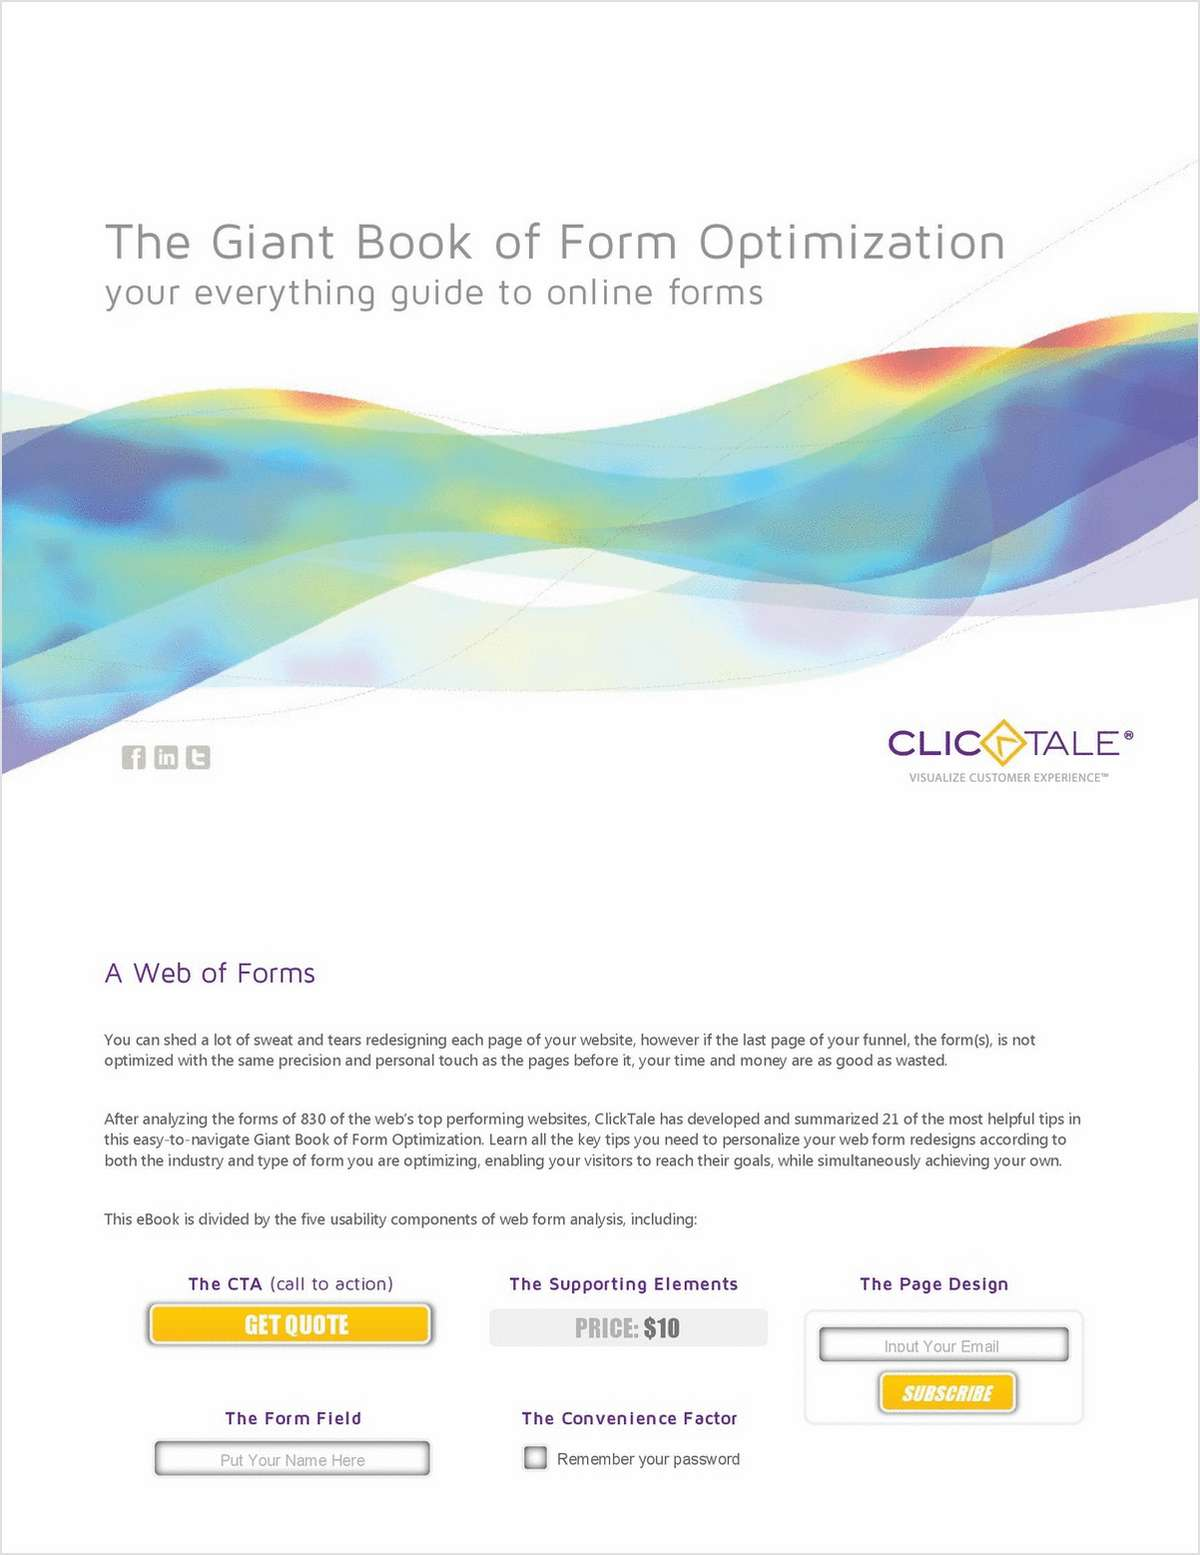 The Giant Book of Form Optimization